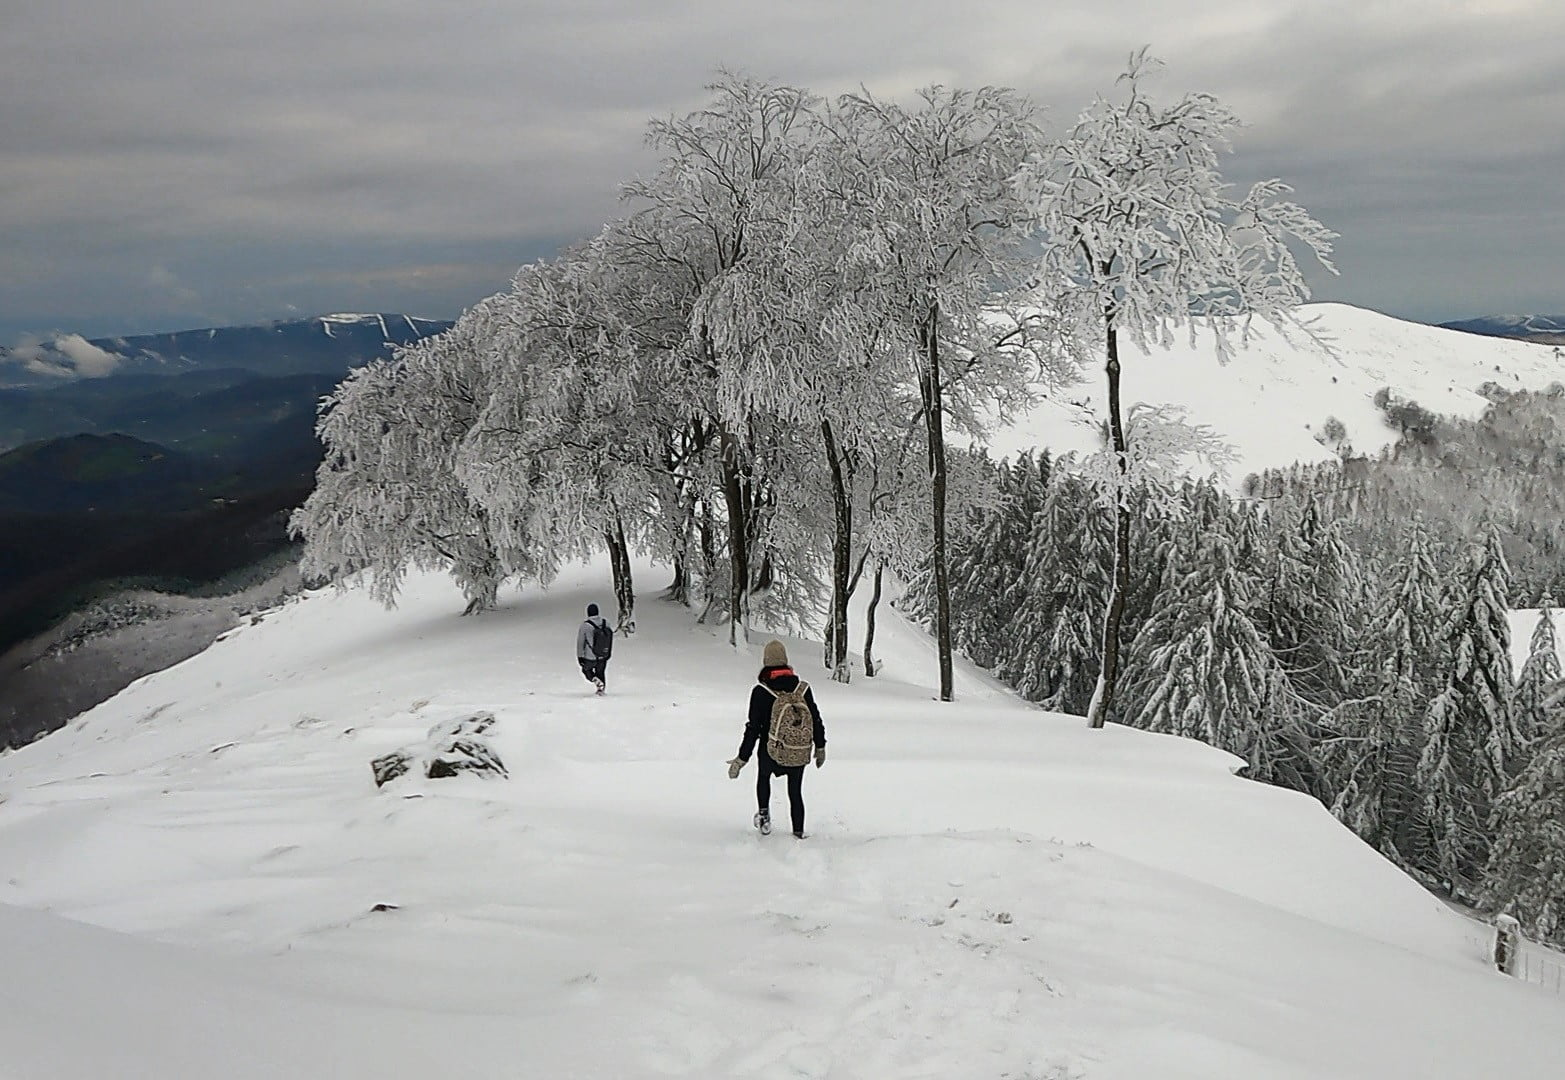 hiking down summit in snow with snow covered trees